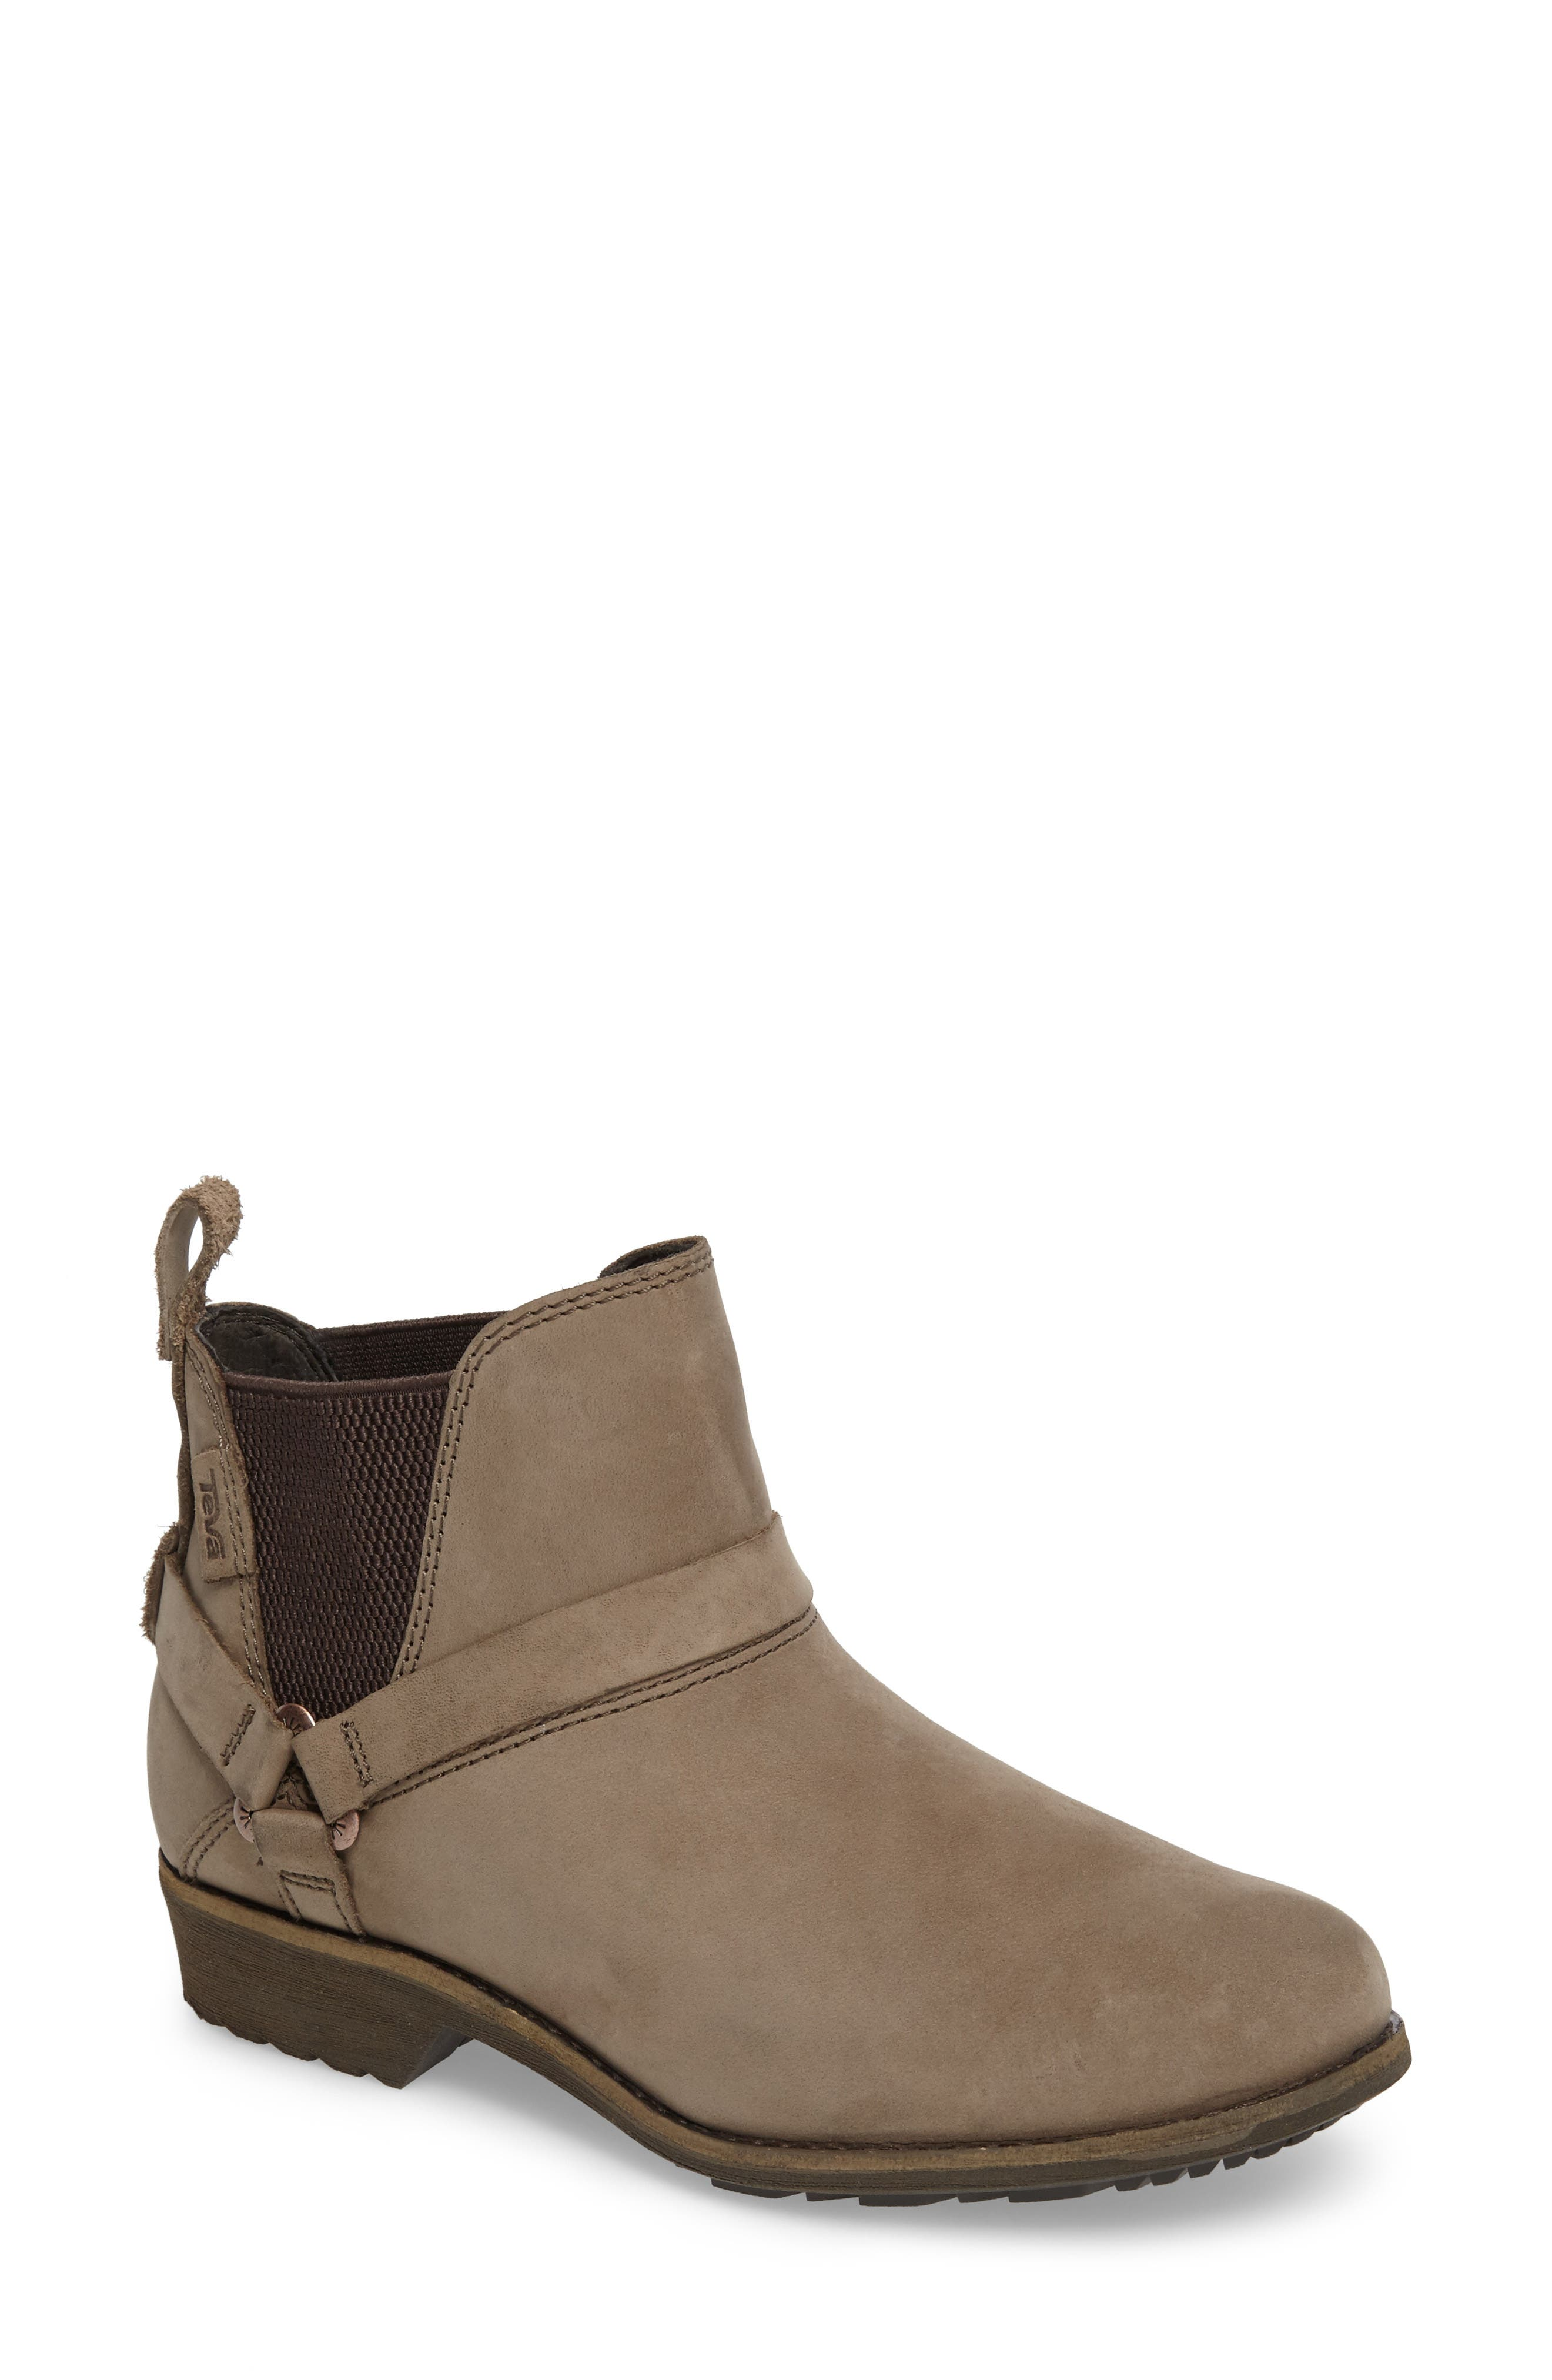 Dina La Vina Dos Waterproof Chelsea Boot,                         Main,                         color, Bungee Cord Leather